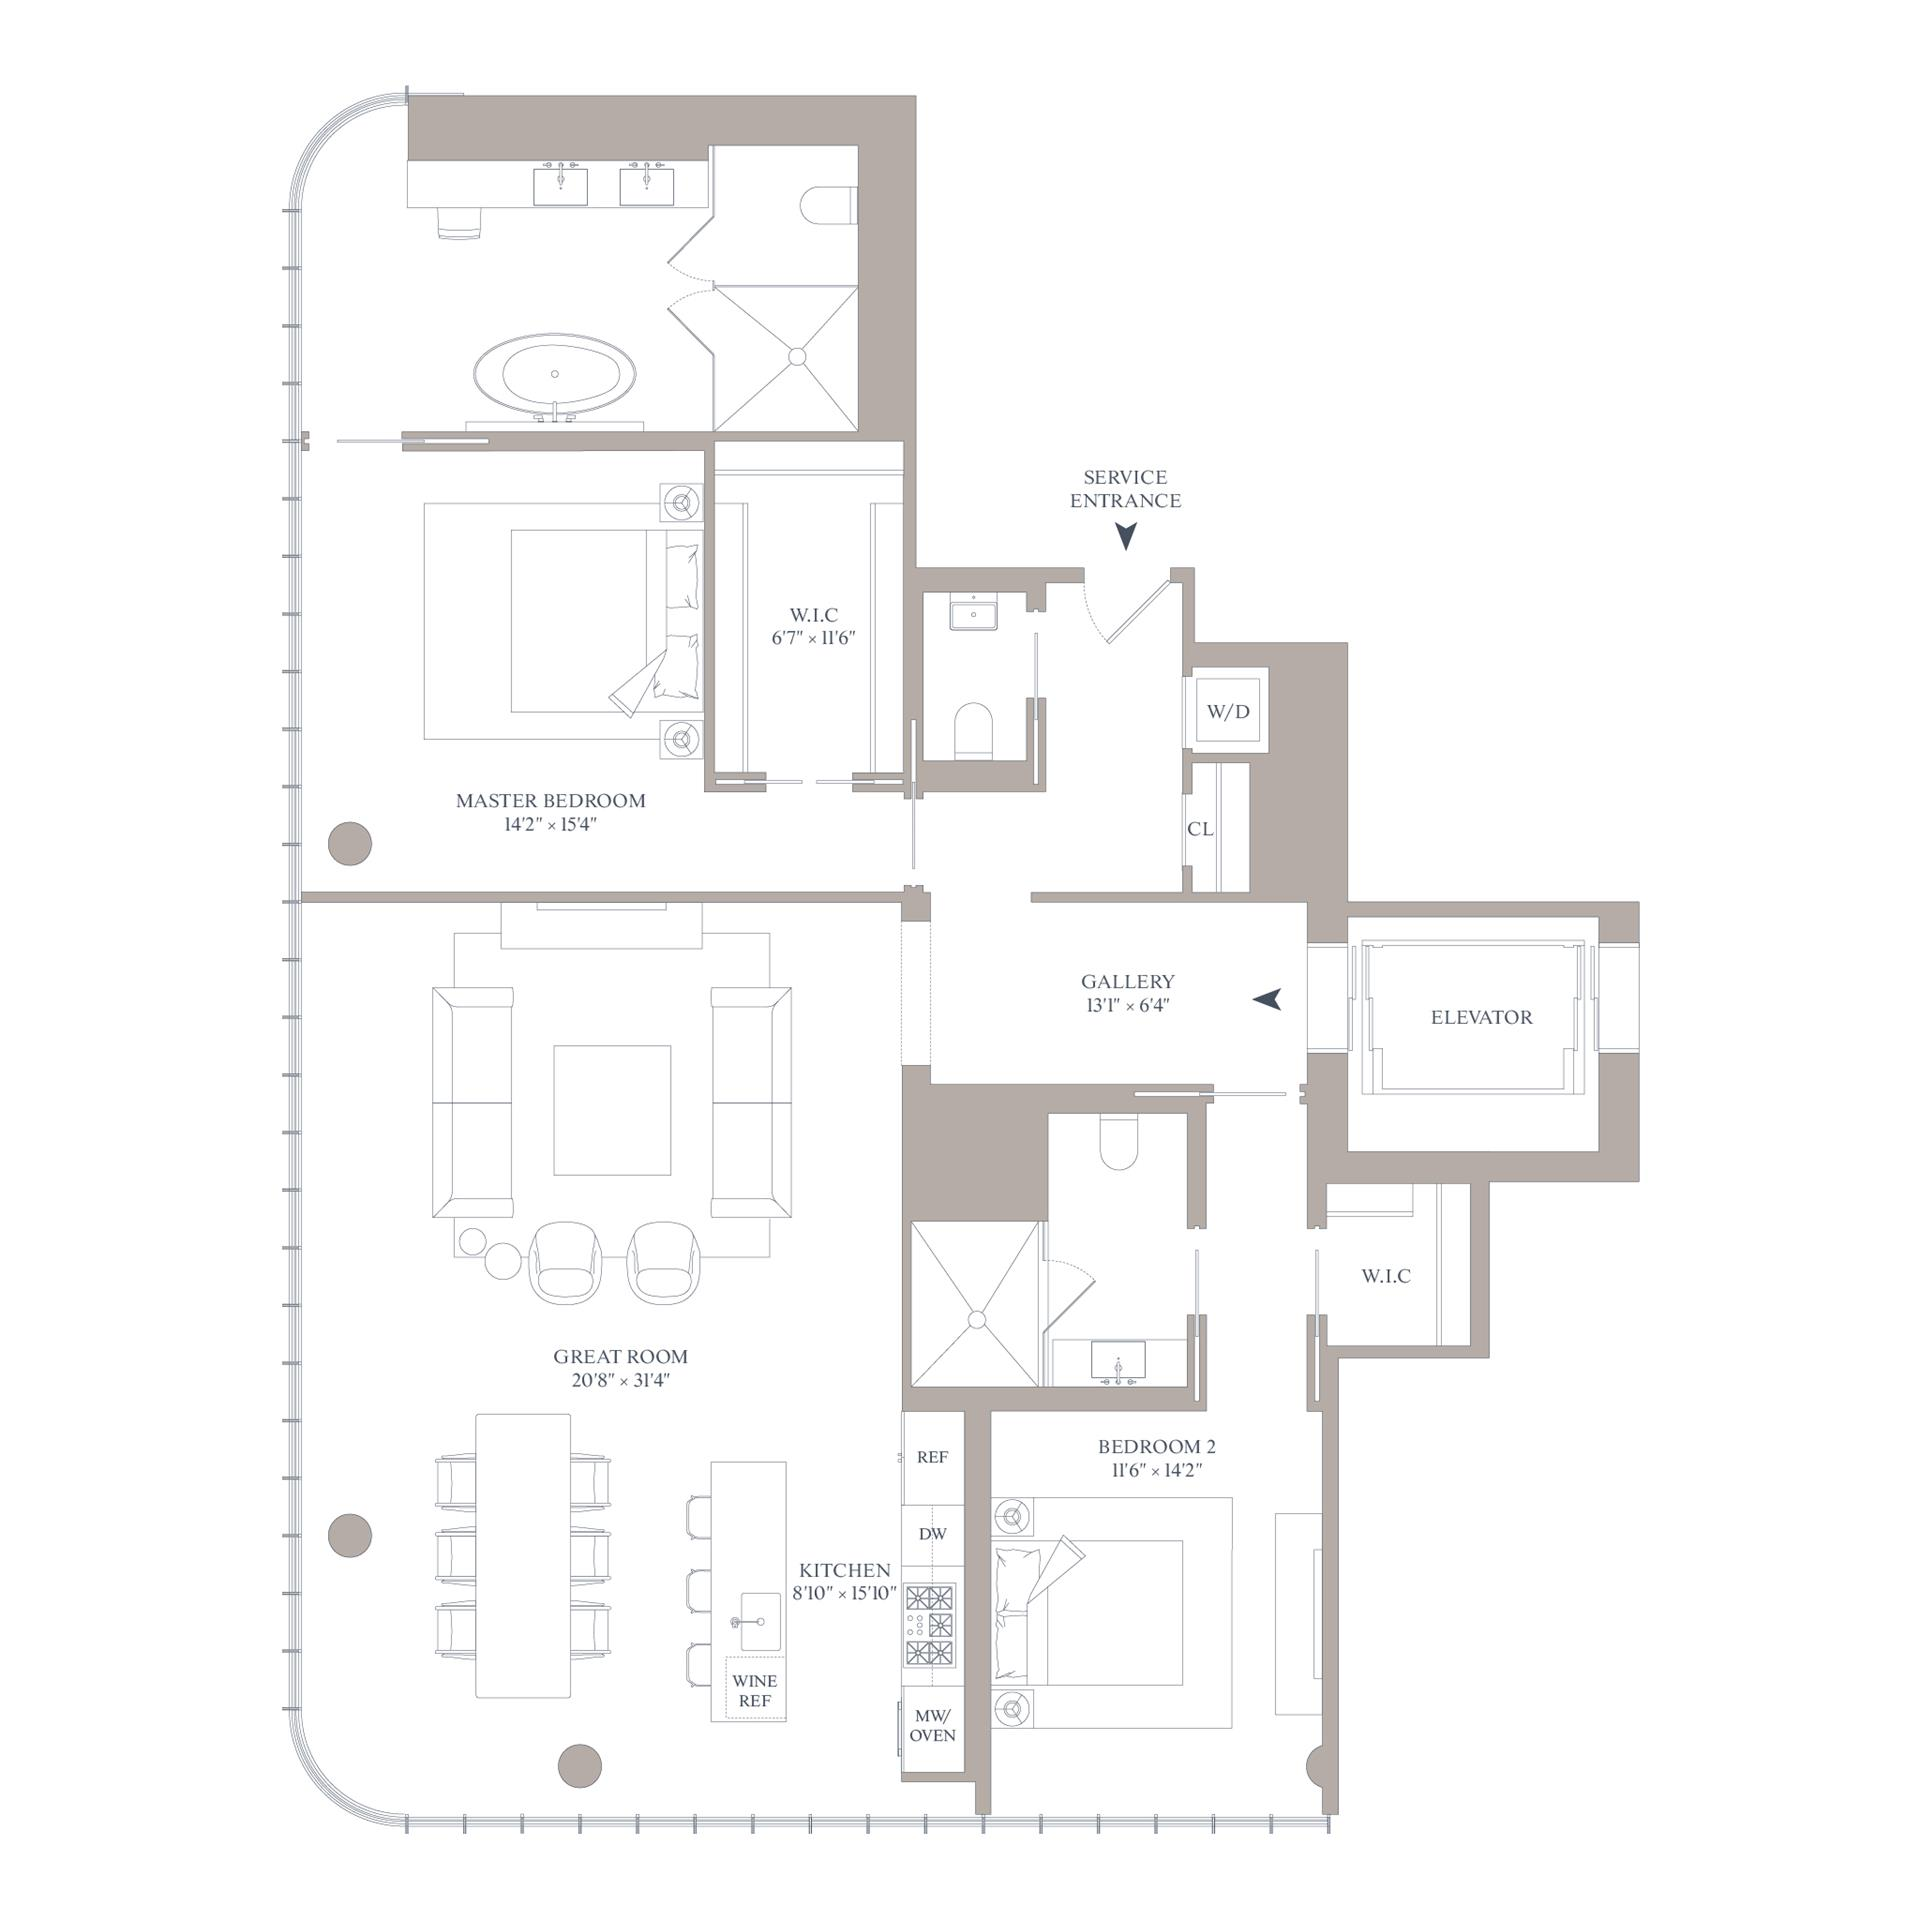 Floor plan of 565 Broome Street, S20A - SoHo - Nolita, New York